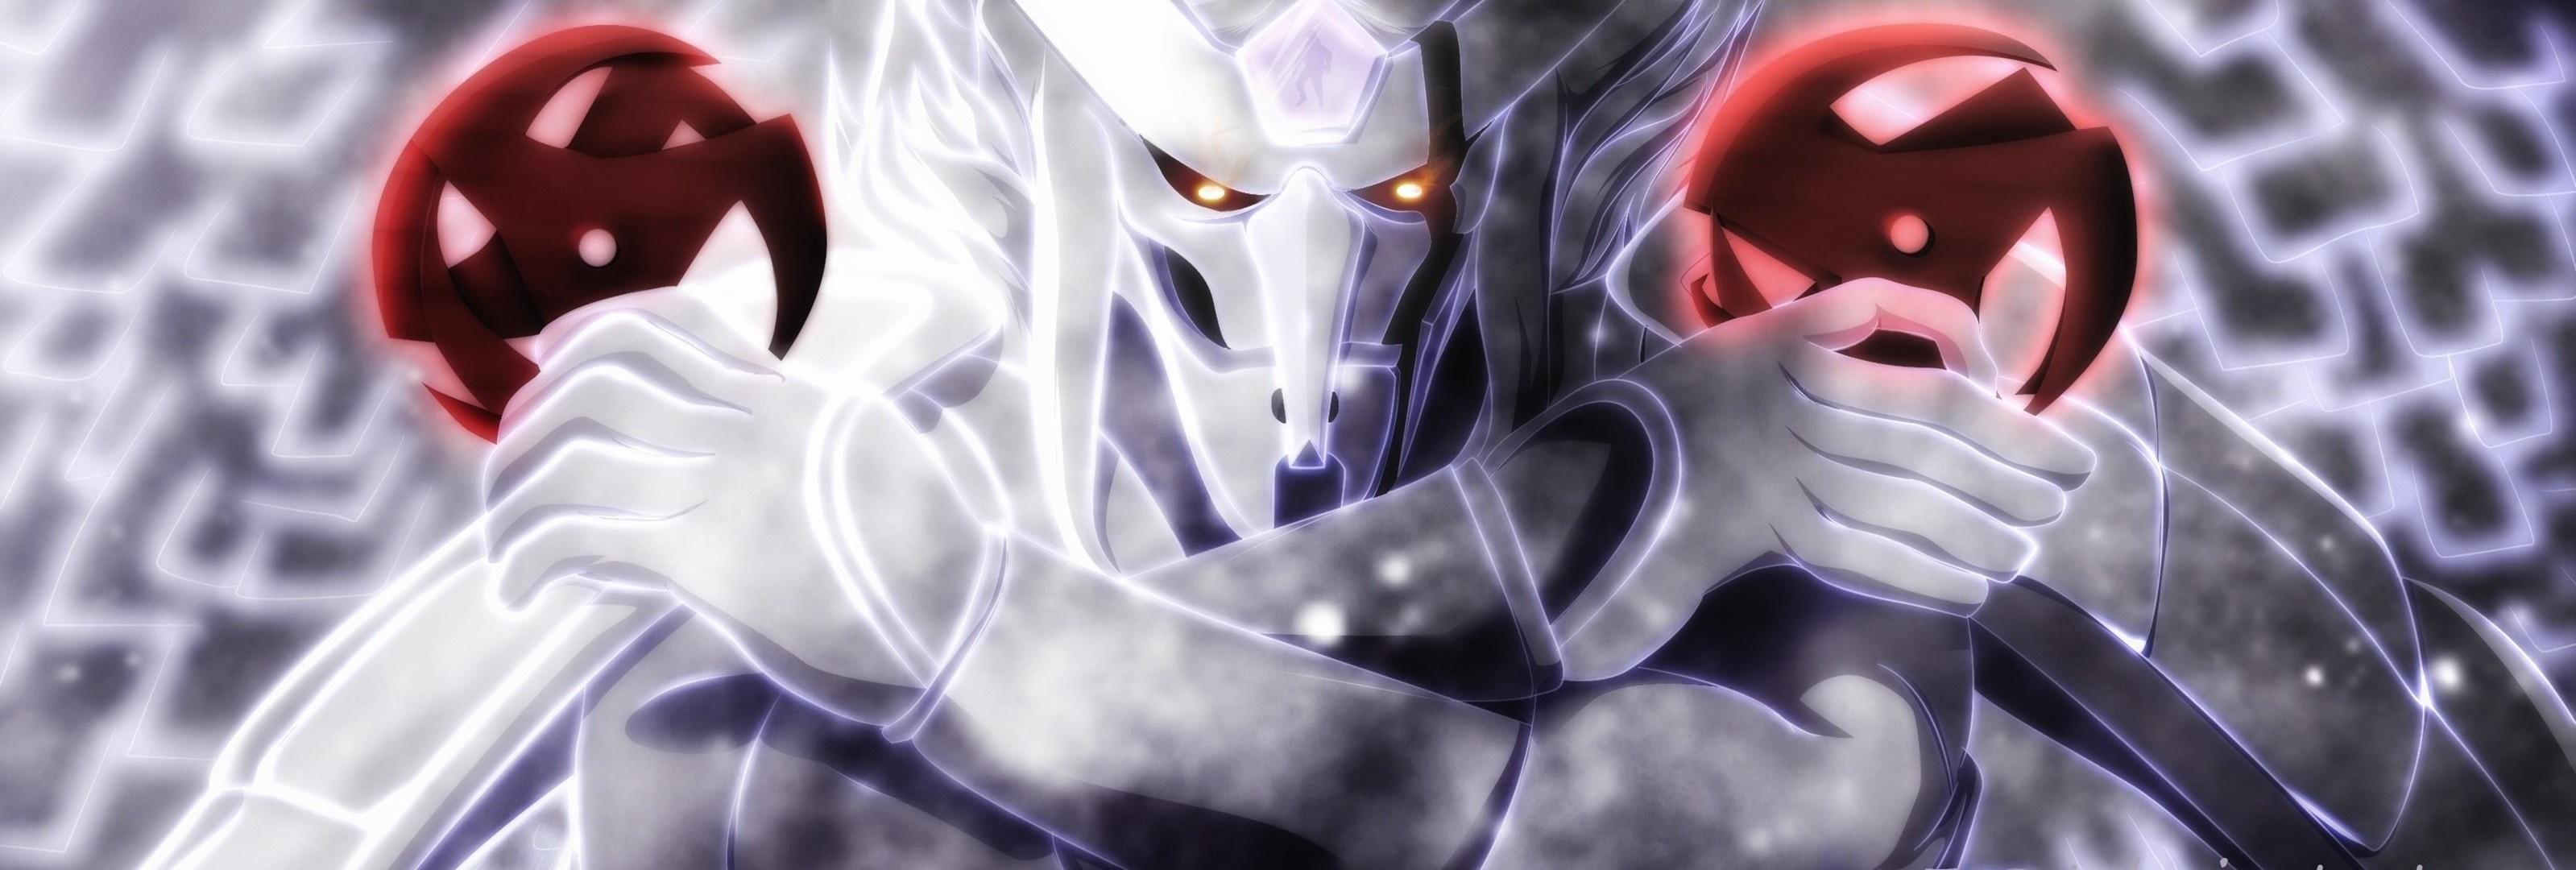 3198x1080 Susanoo Full Hd Wallpaper And Background X Id